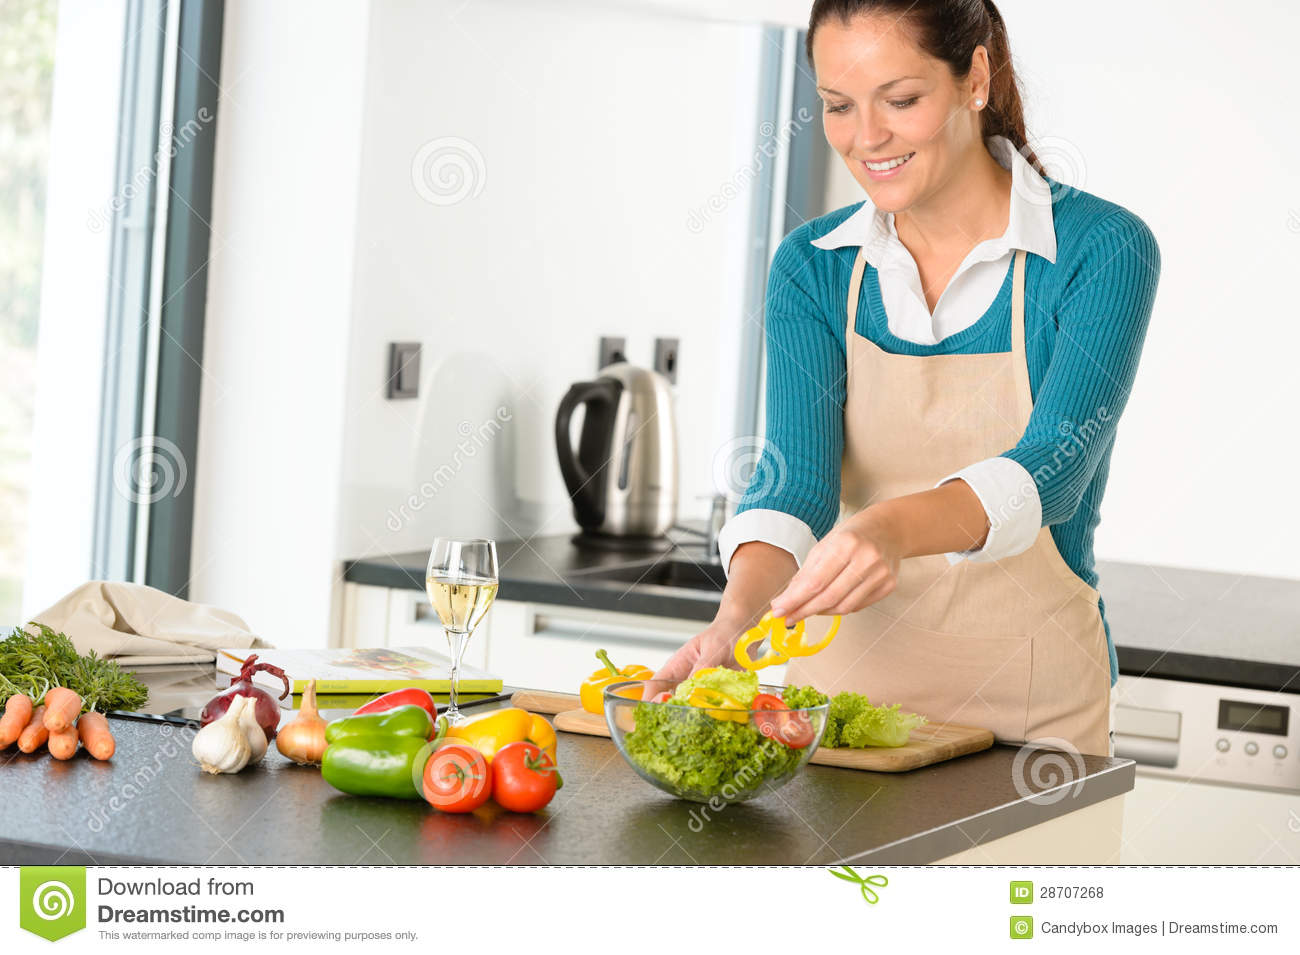 Happy Woman Making Salad Kitchen Vegetables Cooking Royalty Free Stock ...